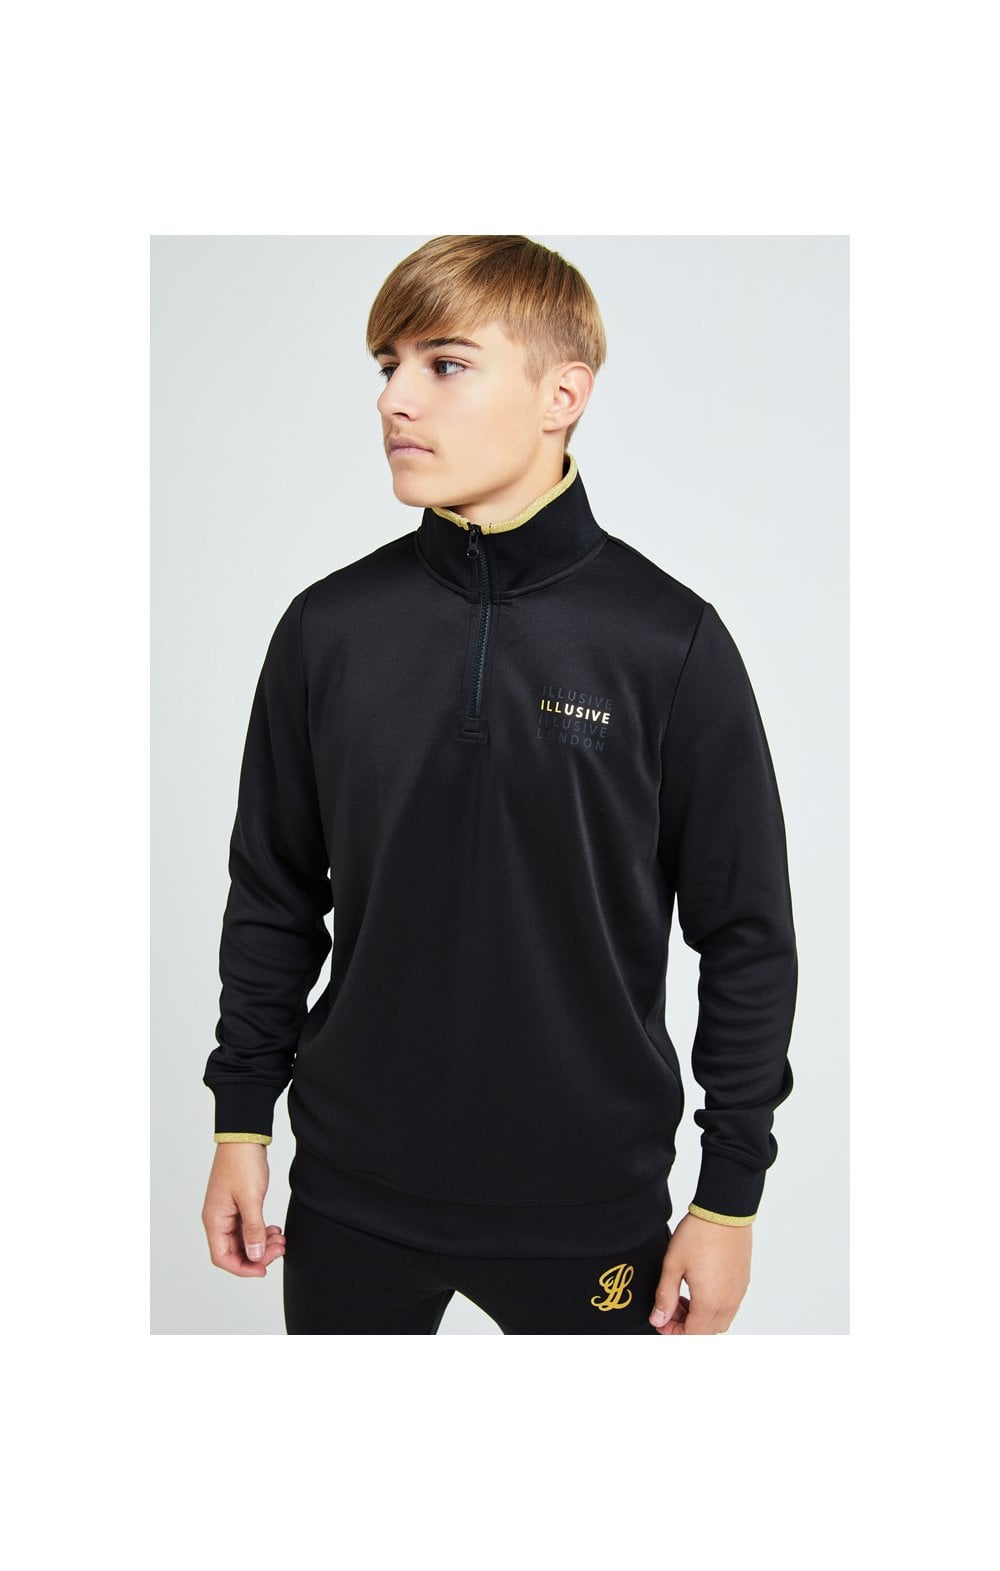 Illusive London Sovereign 1/4 Zip Hoodie  - Black & Gold (2)